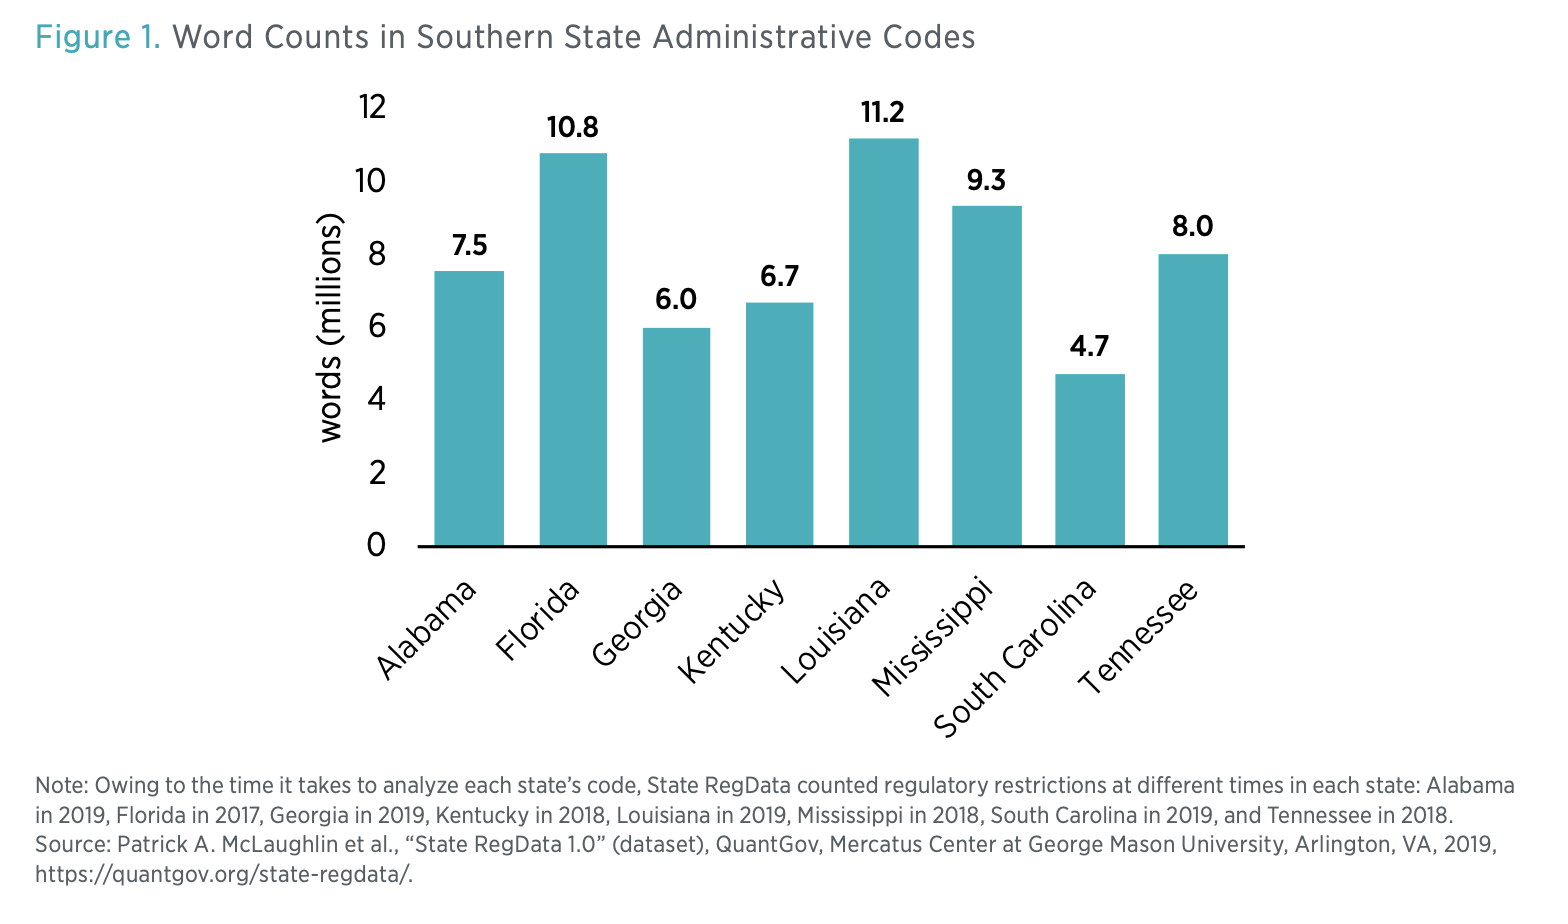 Figure 1. Word Counts in Southern State Administrative Codes